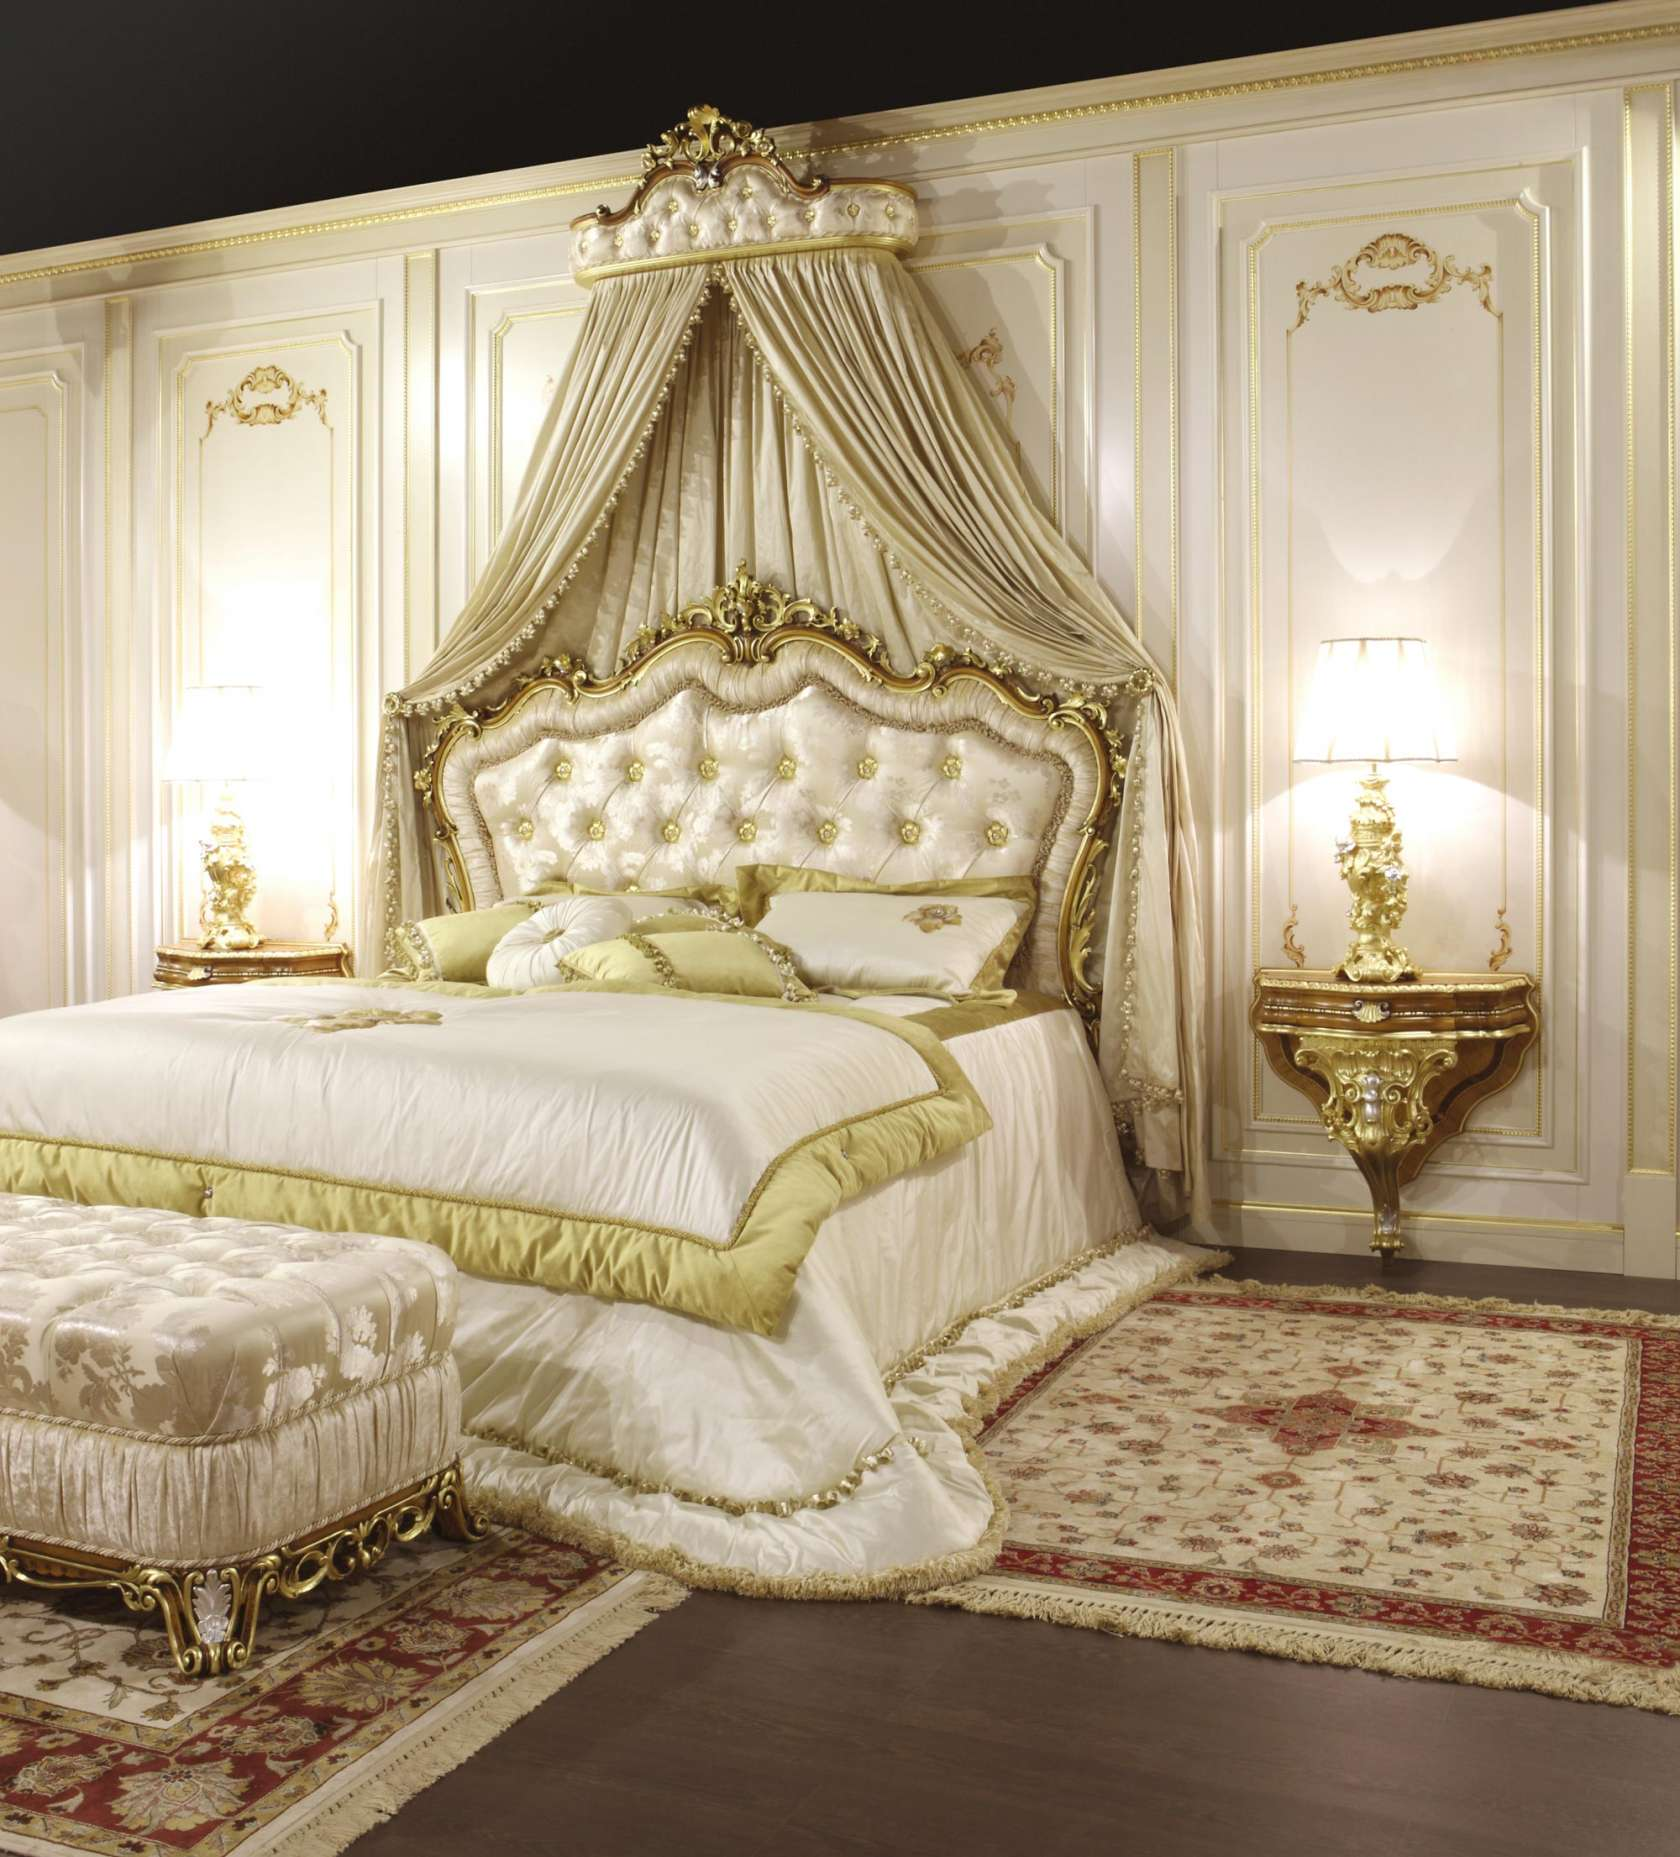 Baroque Bed In Classic Style Art. 2013